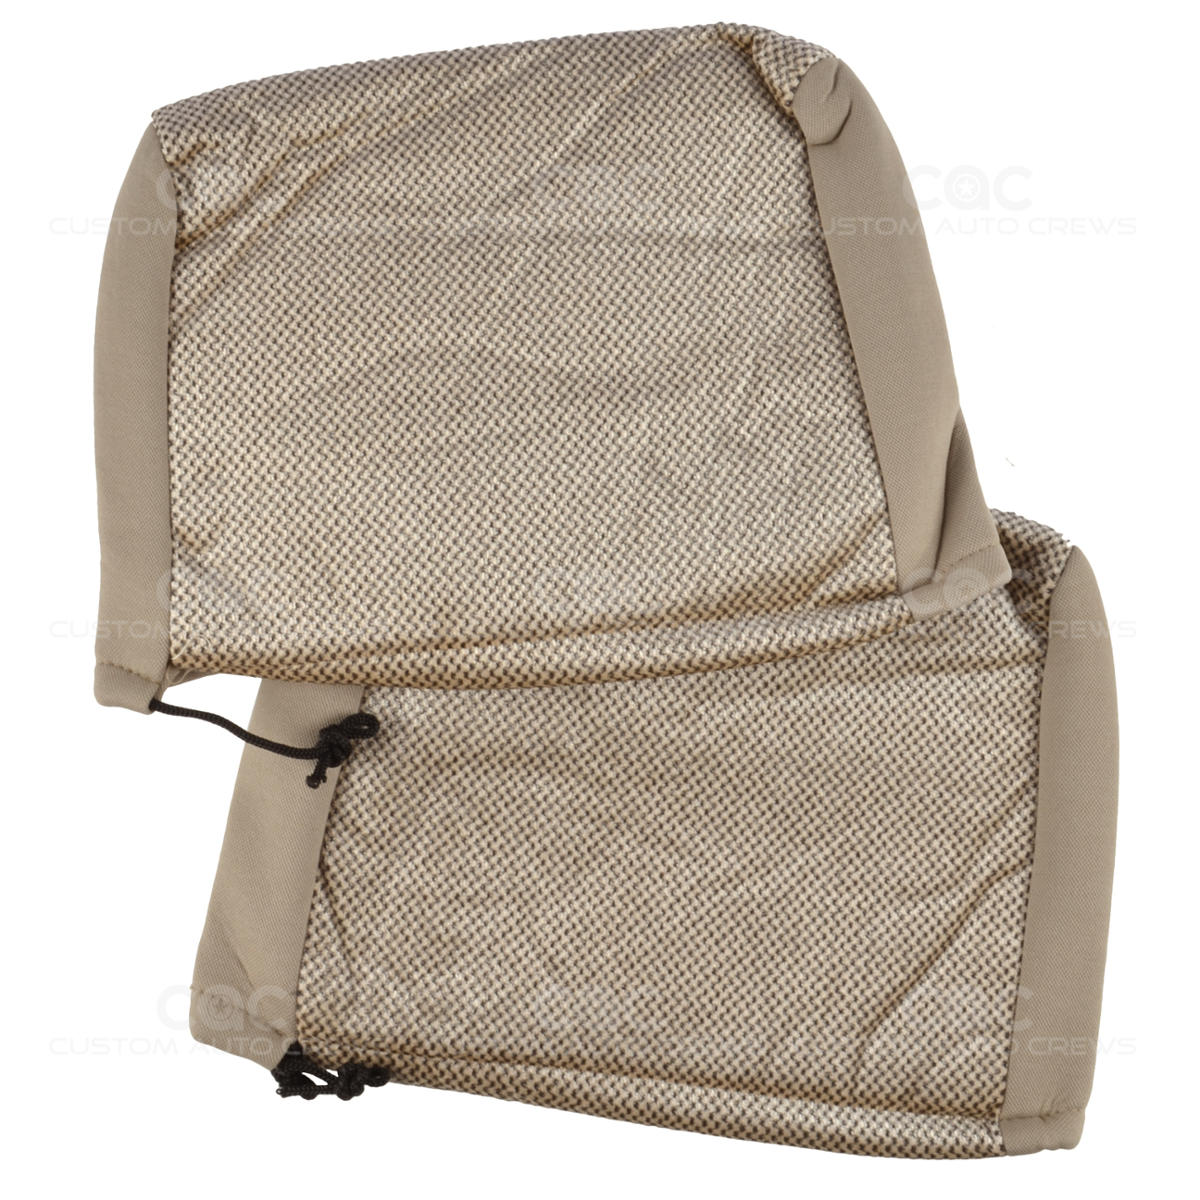 40 60 Split Bench Seat Covers